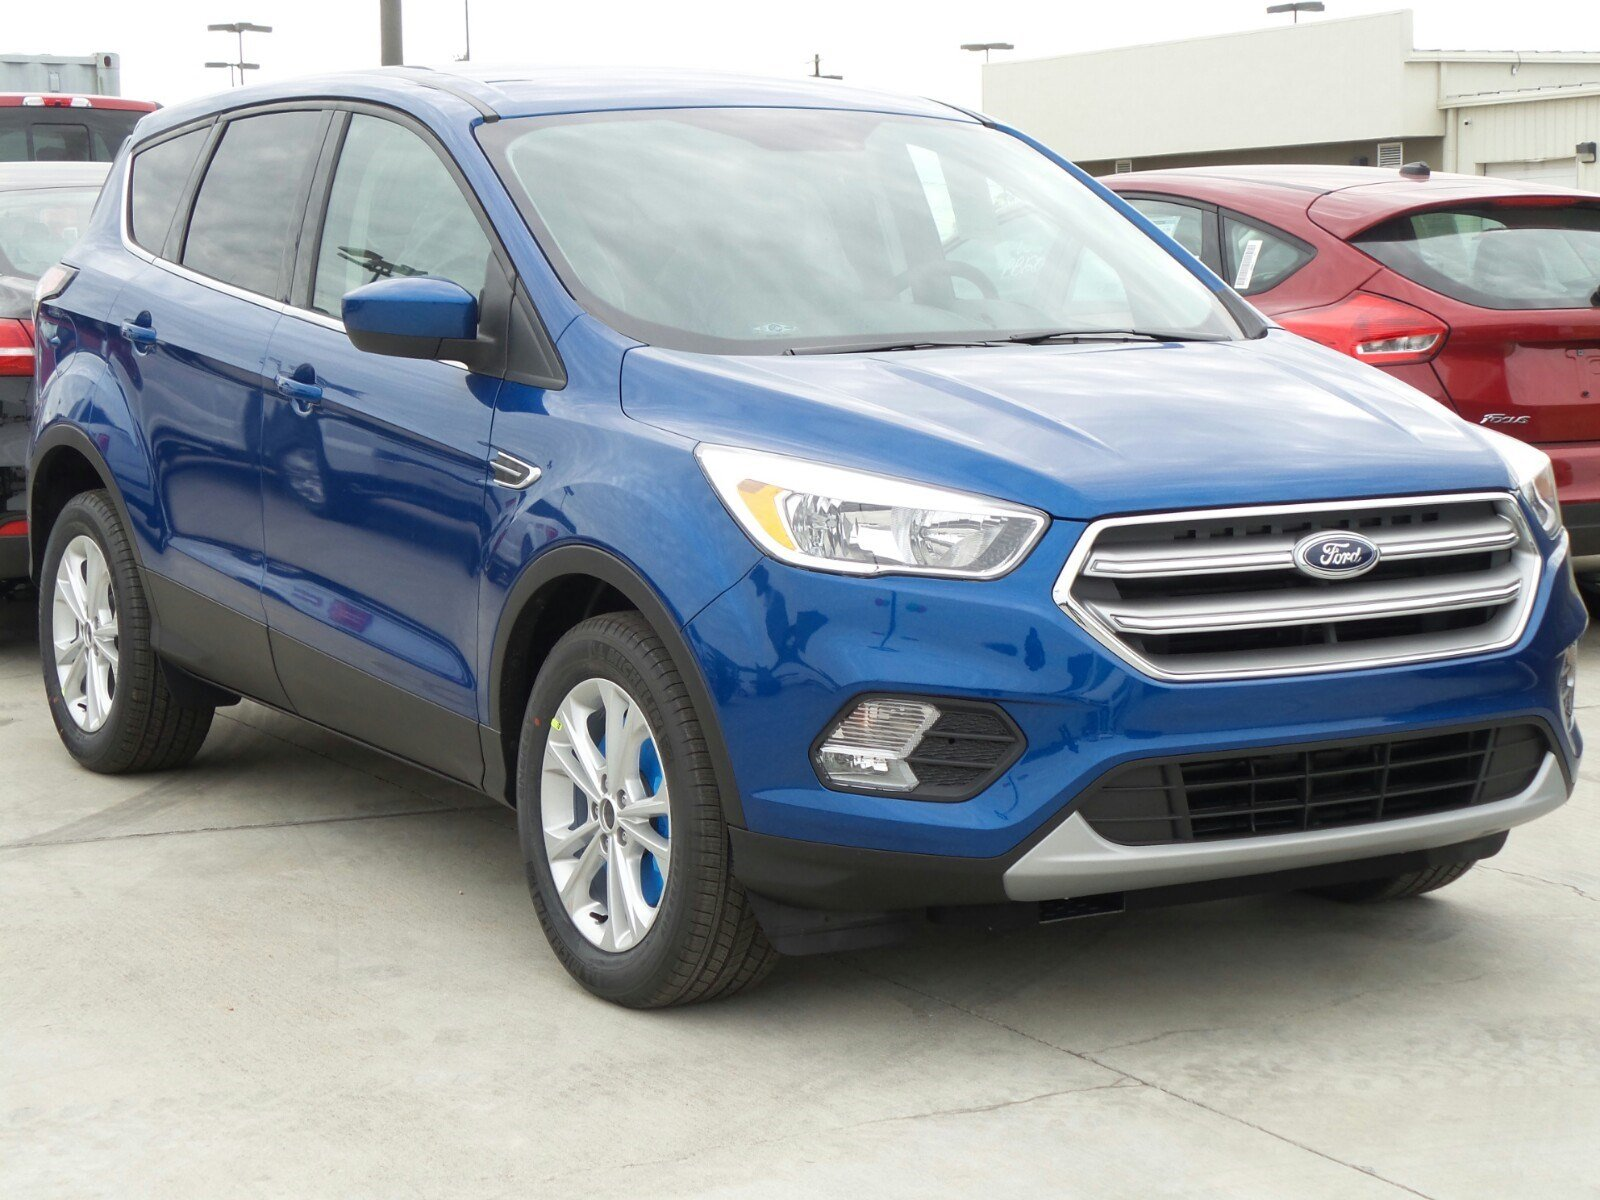 new 2017 ford escape se sport utility in port lavaca uc24559 port lavaca ford. Black Bedroom Furniture Sets. Home Design Ideas